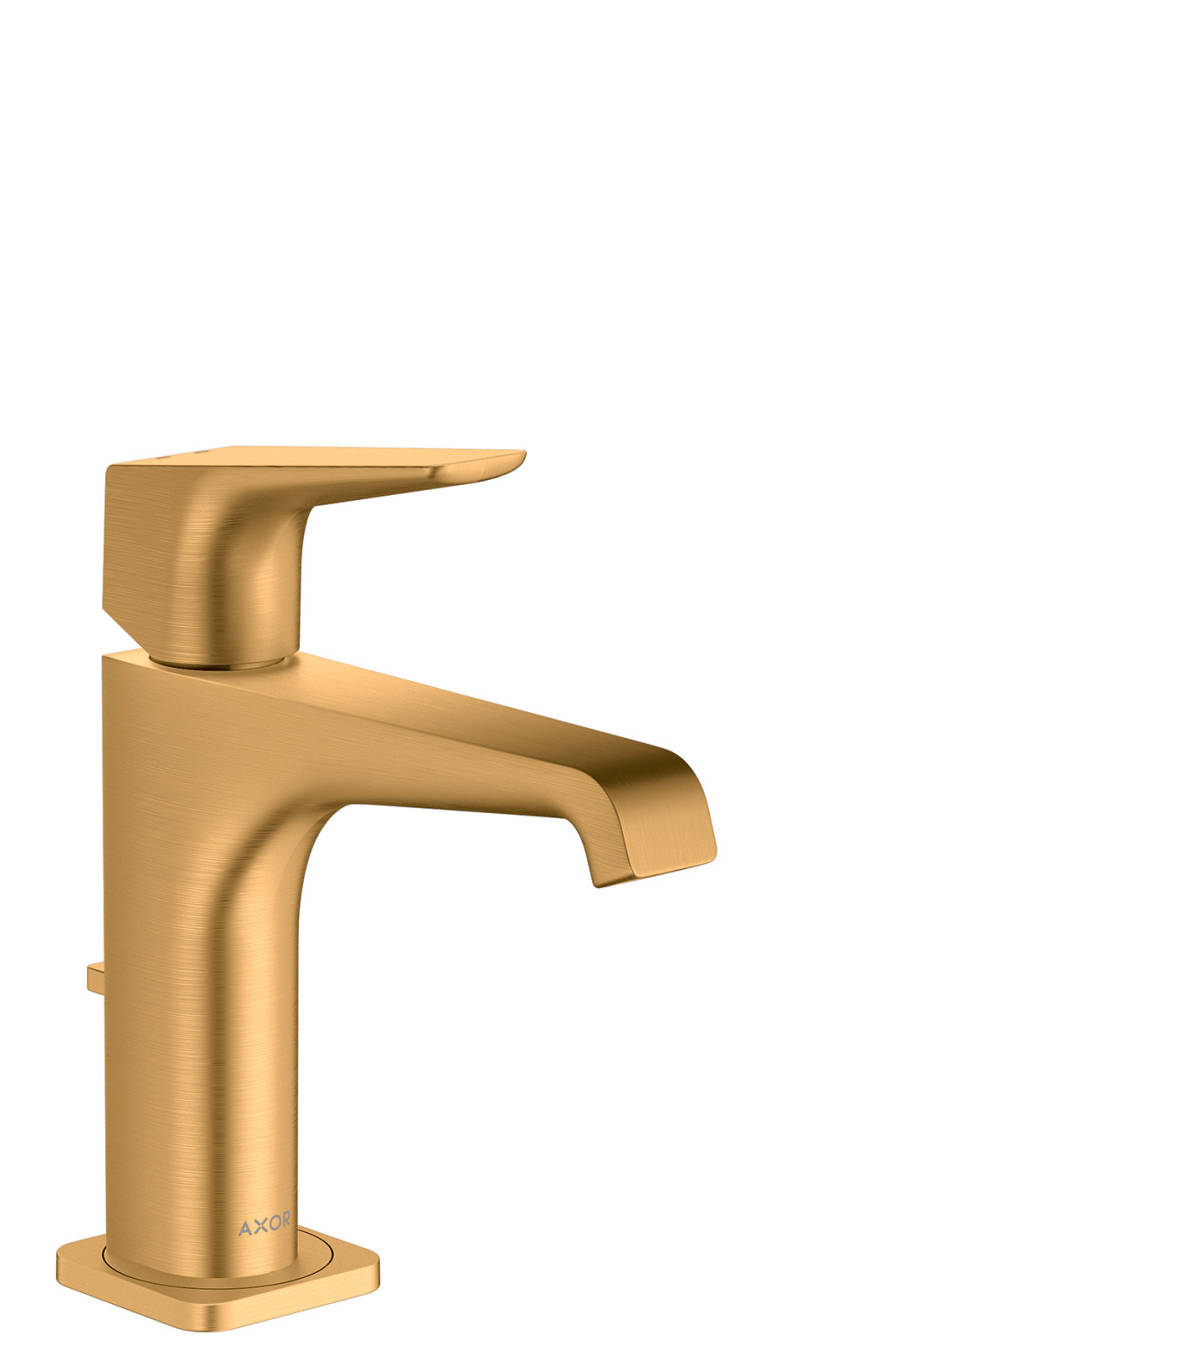 Single lever basin mixer 130 with lever handle and pop-up waste set, Brushed Gold Optic, 36110250